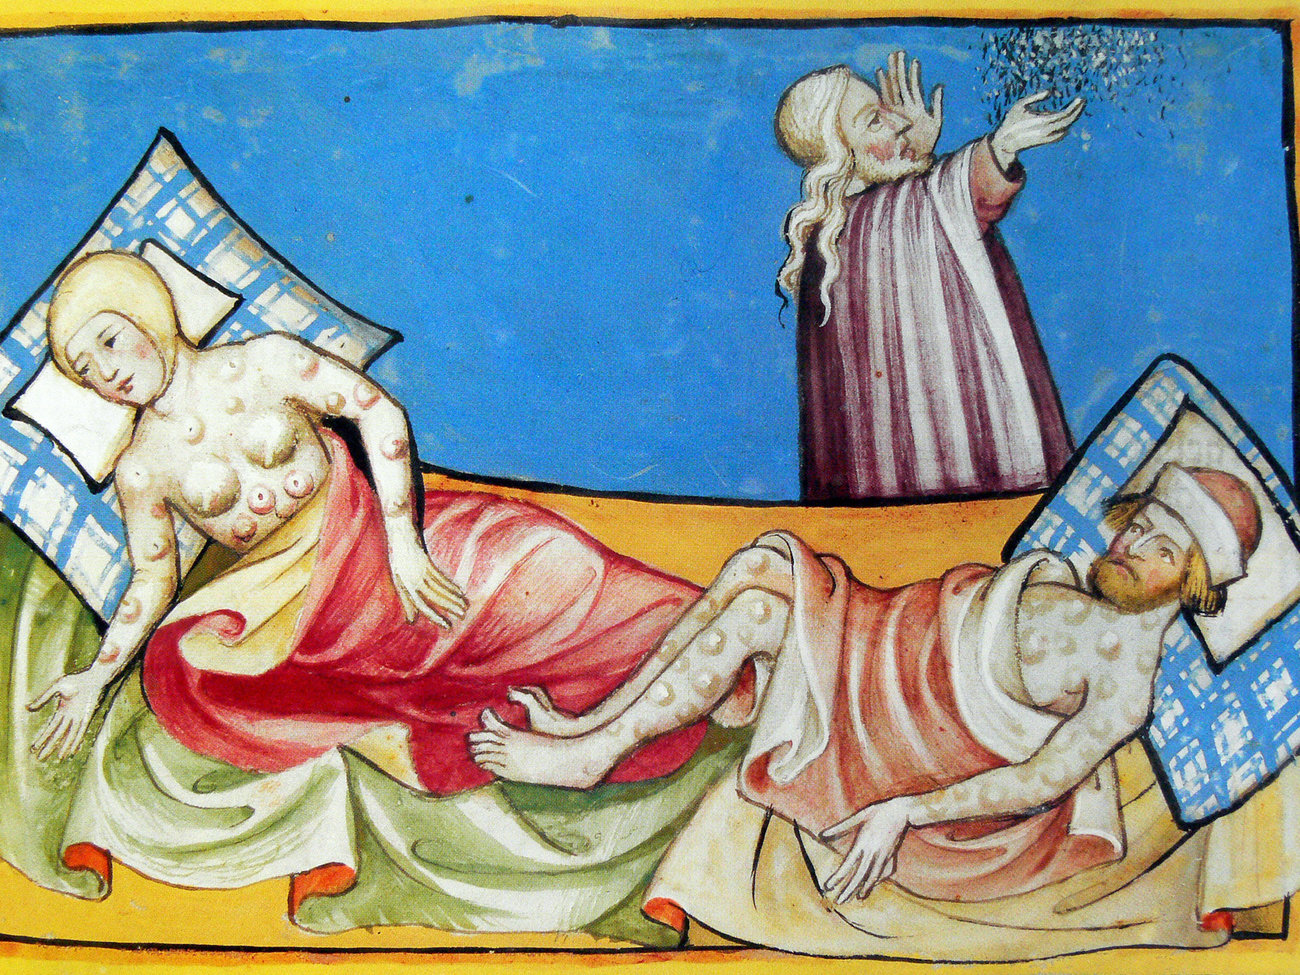 the history and cause of the bubonic plague The black death is known as one of the deadliest and widespread pandemics in history it peaked in europe between 1348 and 1350 and is thought to have been a bubonic plague outbreak caused by.